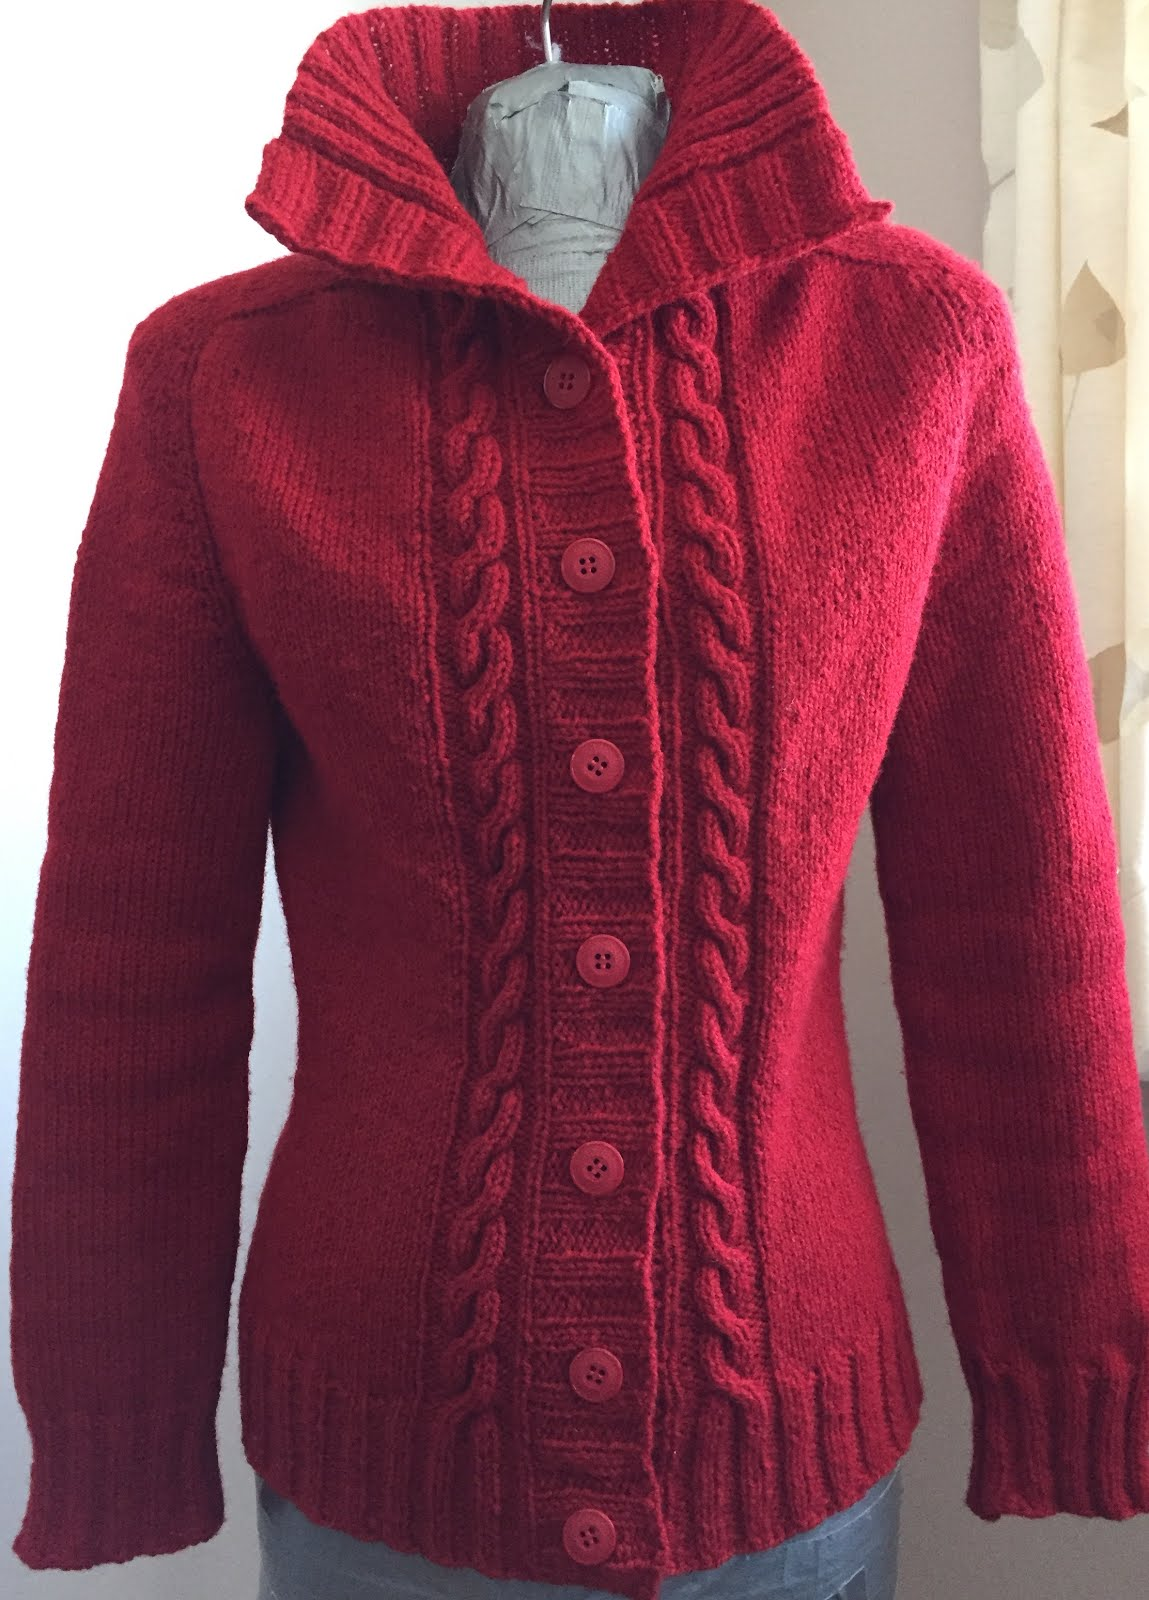 The Sewing Lawyer: Complicated hand-knit cardigan ... phew!